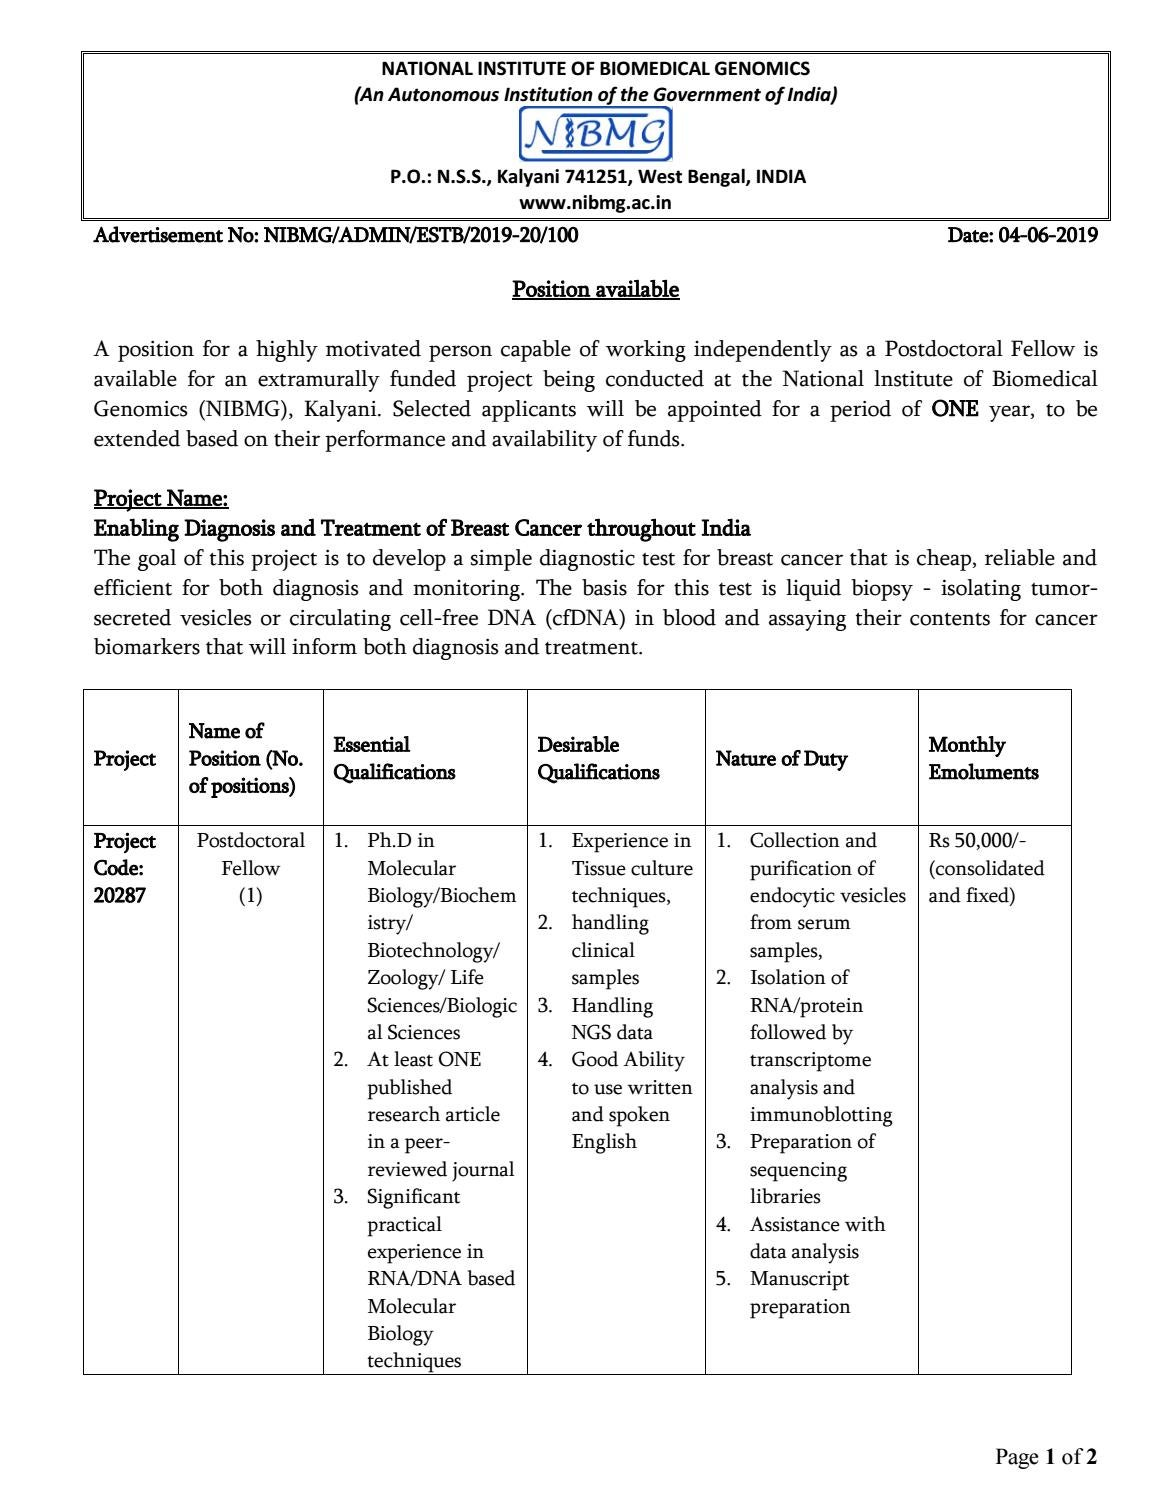 NIBMG PhD Postdoctoral Fellow Job With Rs  50,000 Salary pm